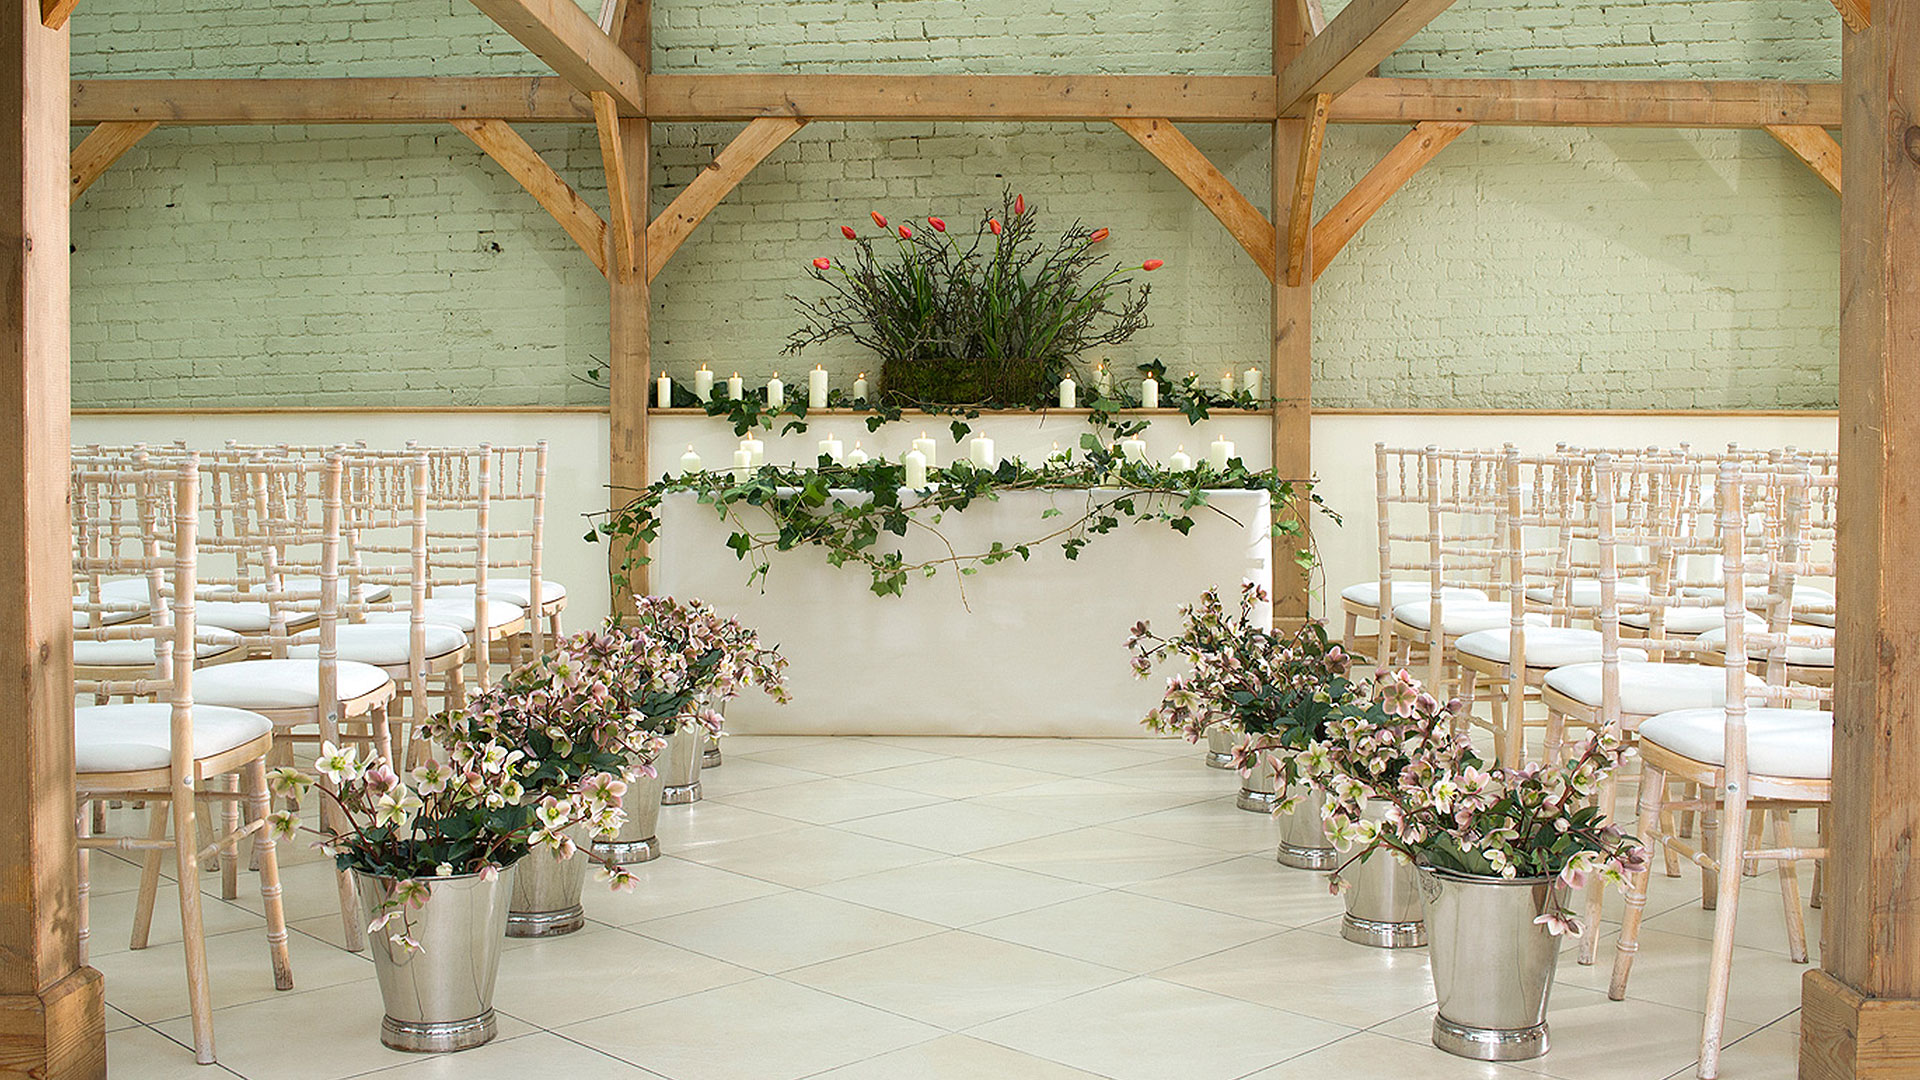 Beautiful pink flowers in silver planters line the wedding aisle at this stunning wedding ceremony barn